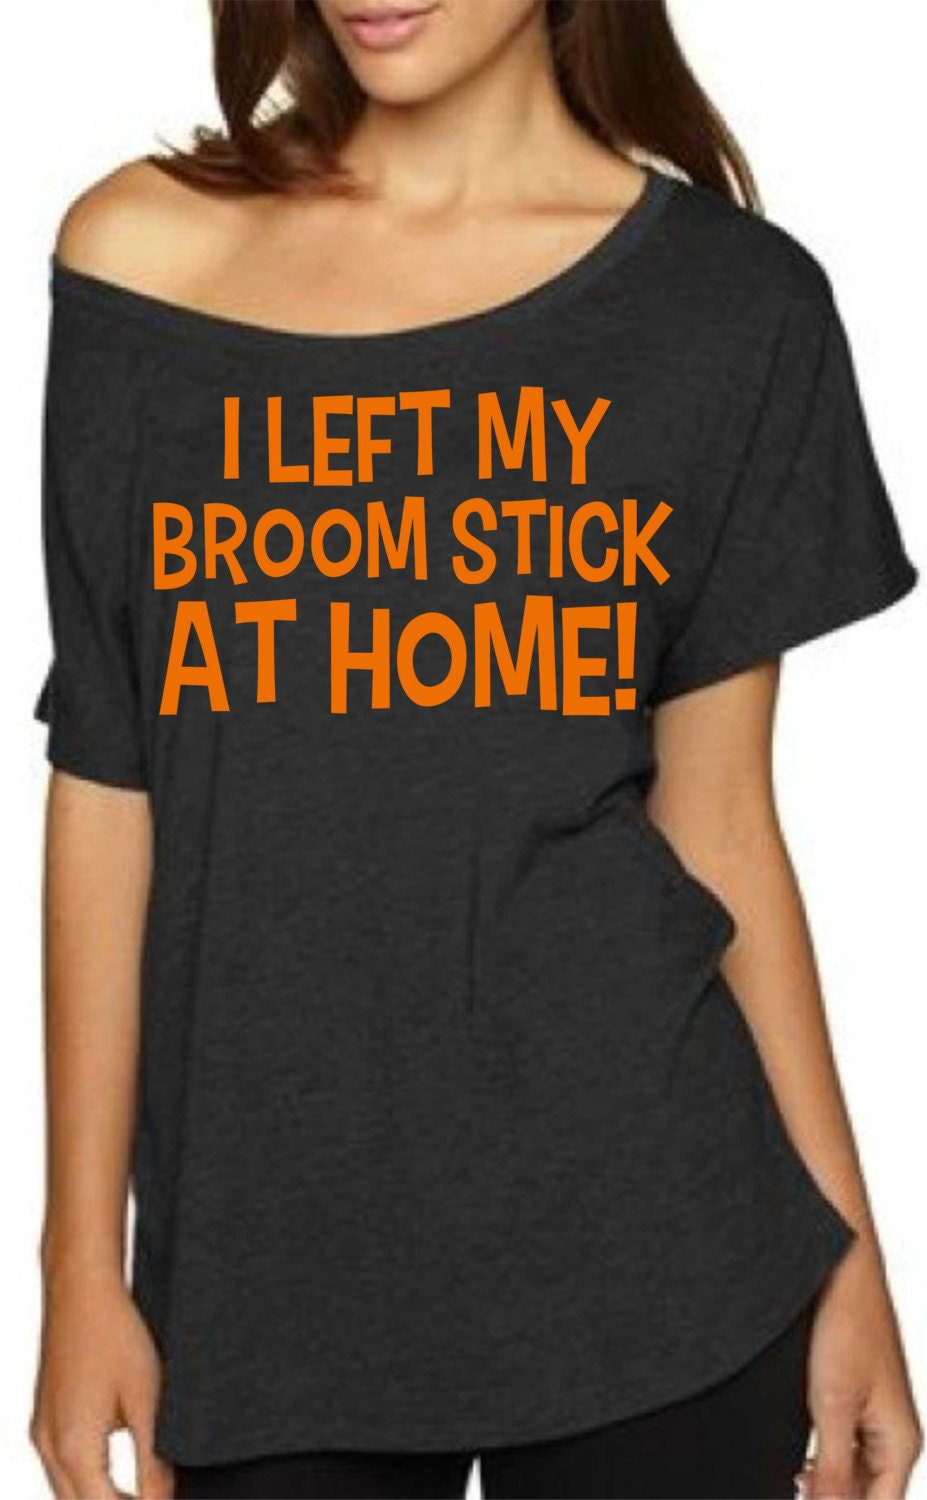 costume t shirt halloween costume shirts funny halloween oversized shirt i left my broom stick at home ladies halloween witch shirt